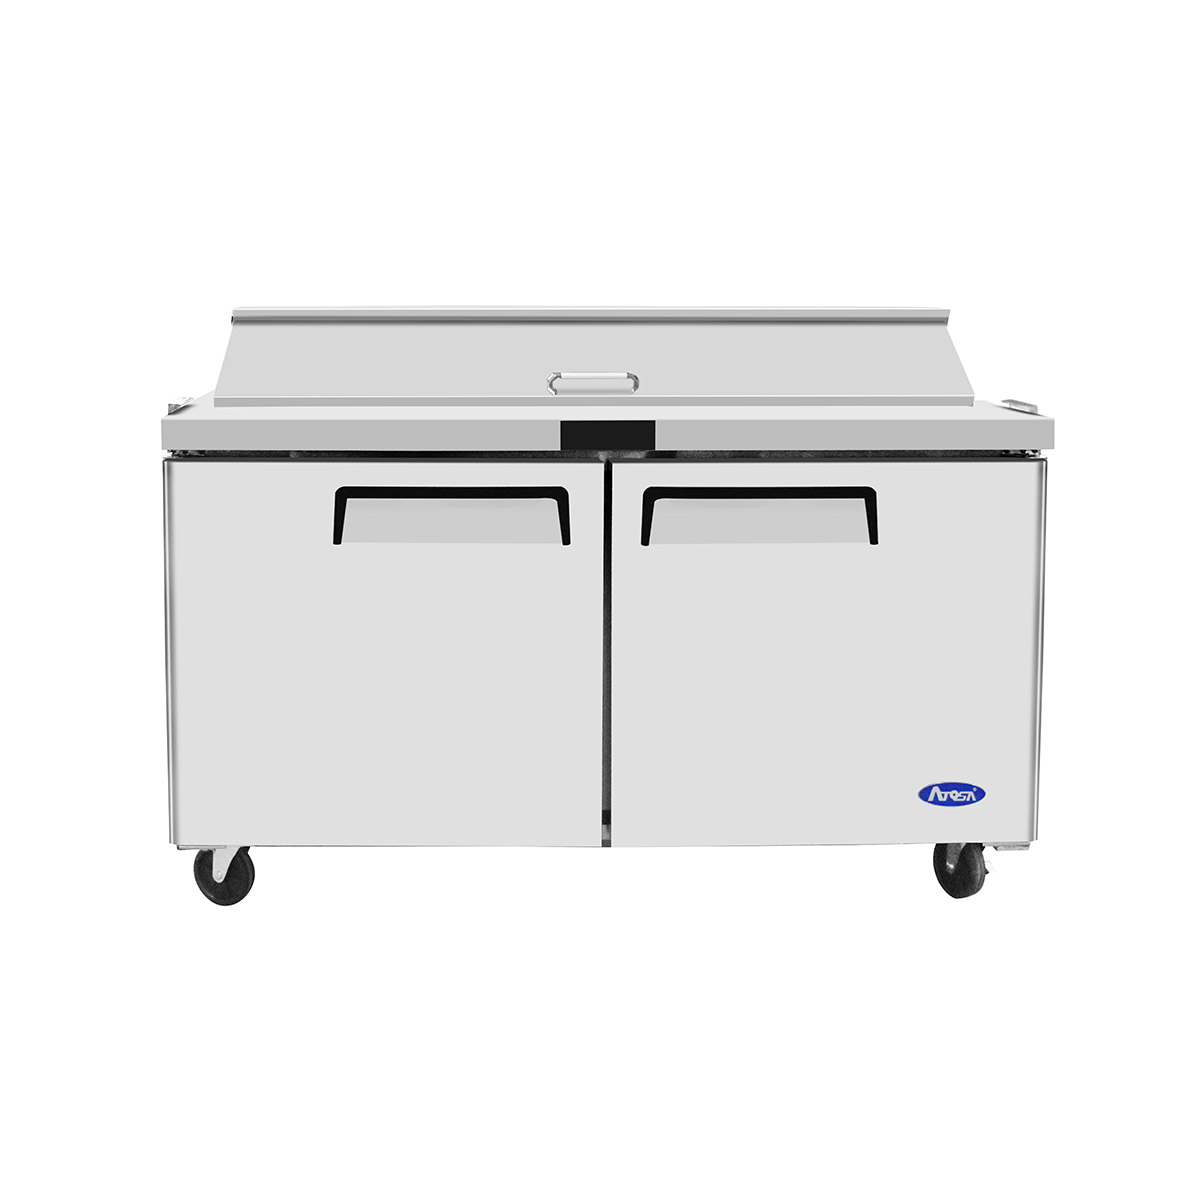 Atosa MSF8303GR Heavy Duty 2 Door Prep Counter 515 Litres with 16 x 1/6 GN Pans